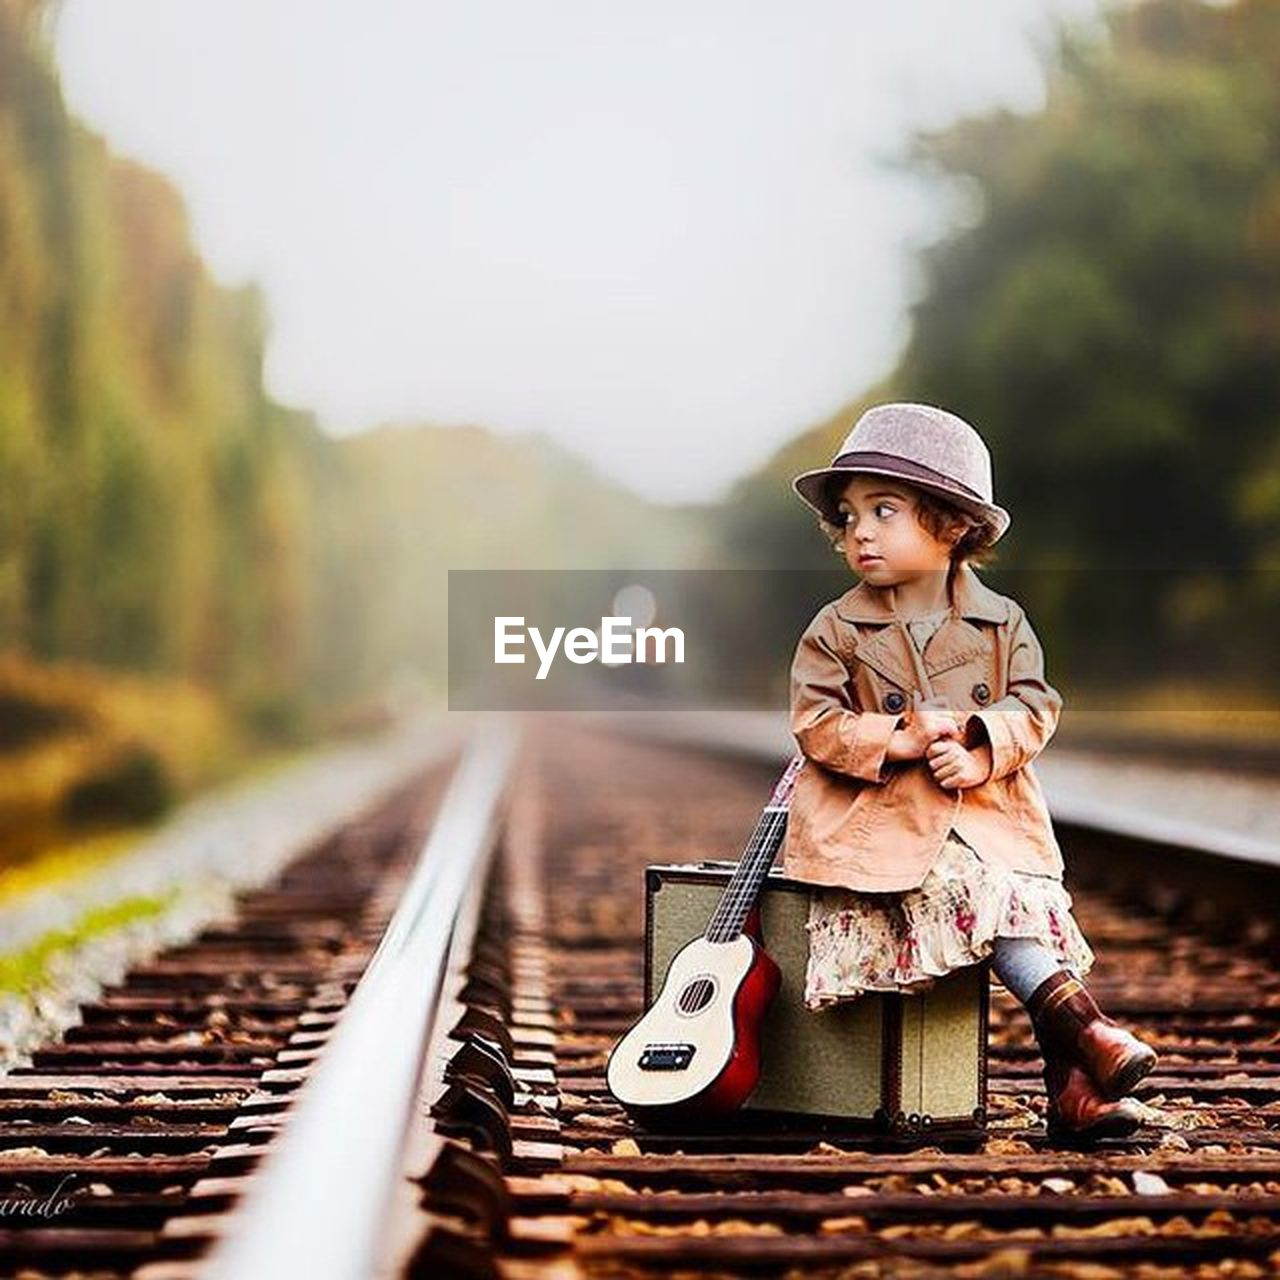 railroad track, hat, child, rail transportation, one person, children only, boys, journey, outdoors, childhood, train - vehicle, people, adventure, transportation, old-fashioned, day, portrait, headwear, adult, one boy only, sky, camouflage clothing